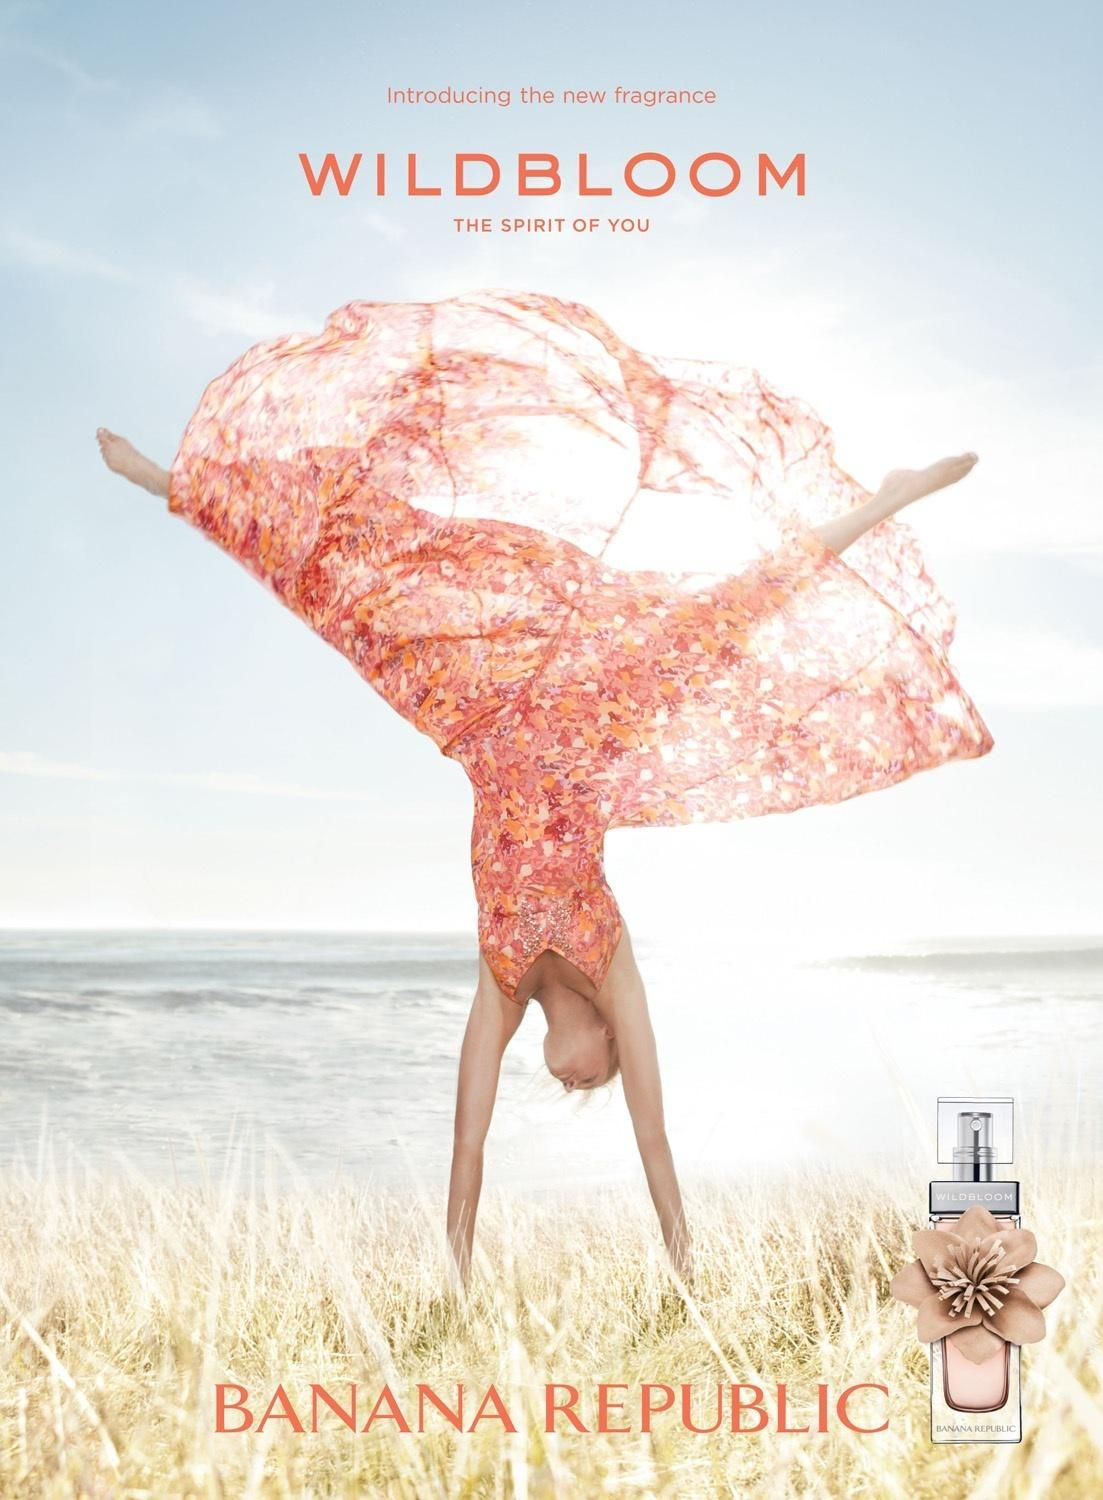 Photo Banana Republic Wildbloom Fragrance Campaign edited